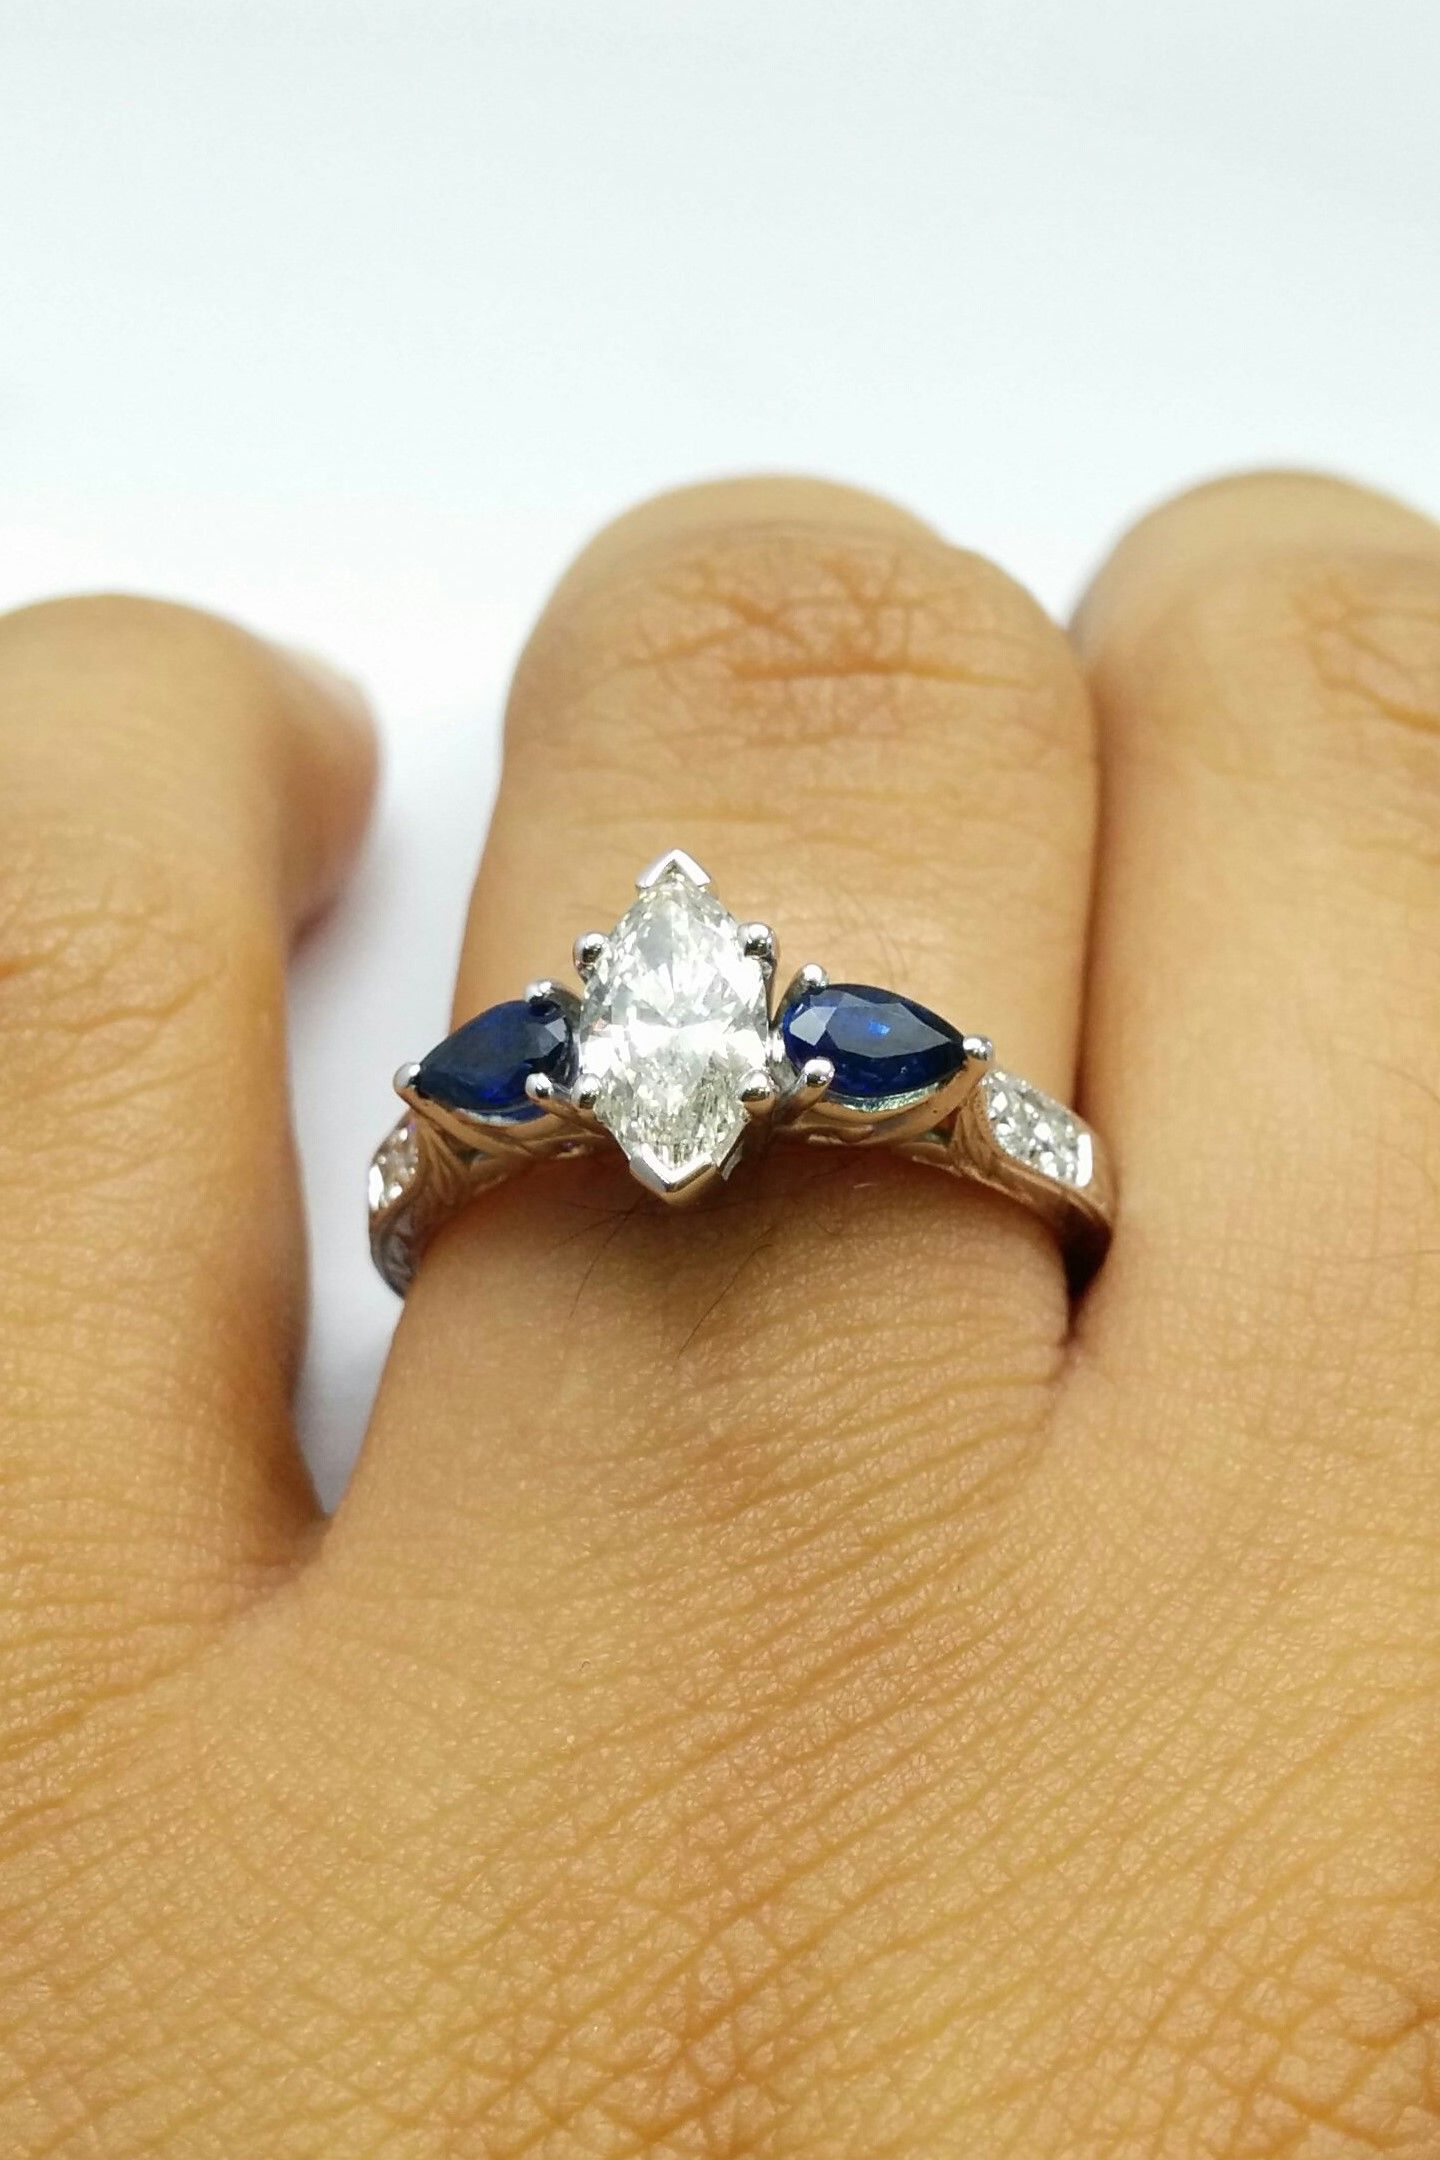 rings blue chimes silver dp for in royal wedding yellow rich jewellery ring austrian women and amazon girls crystal sterling